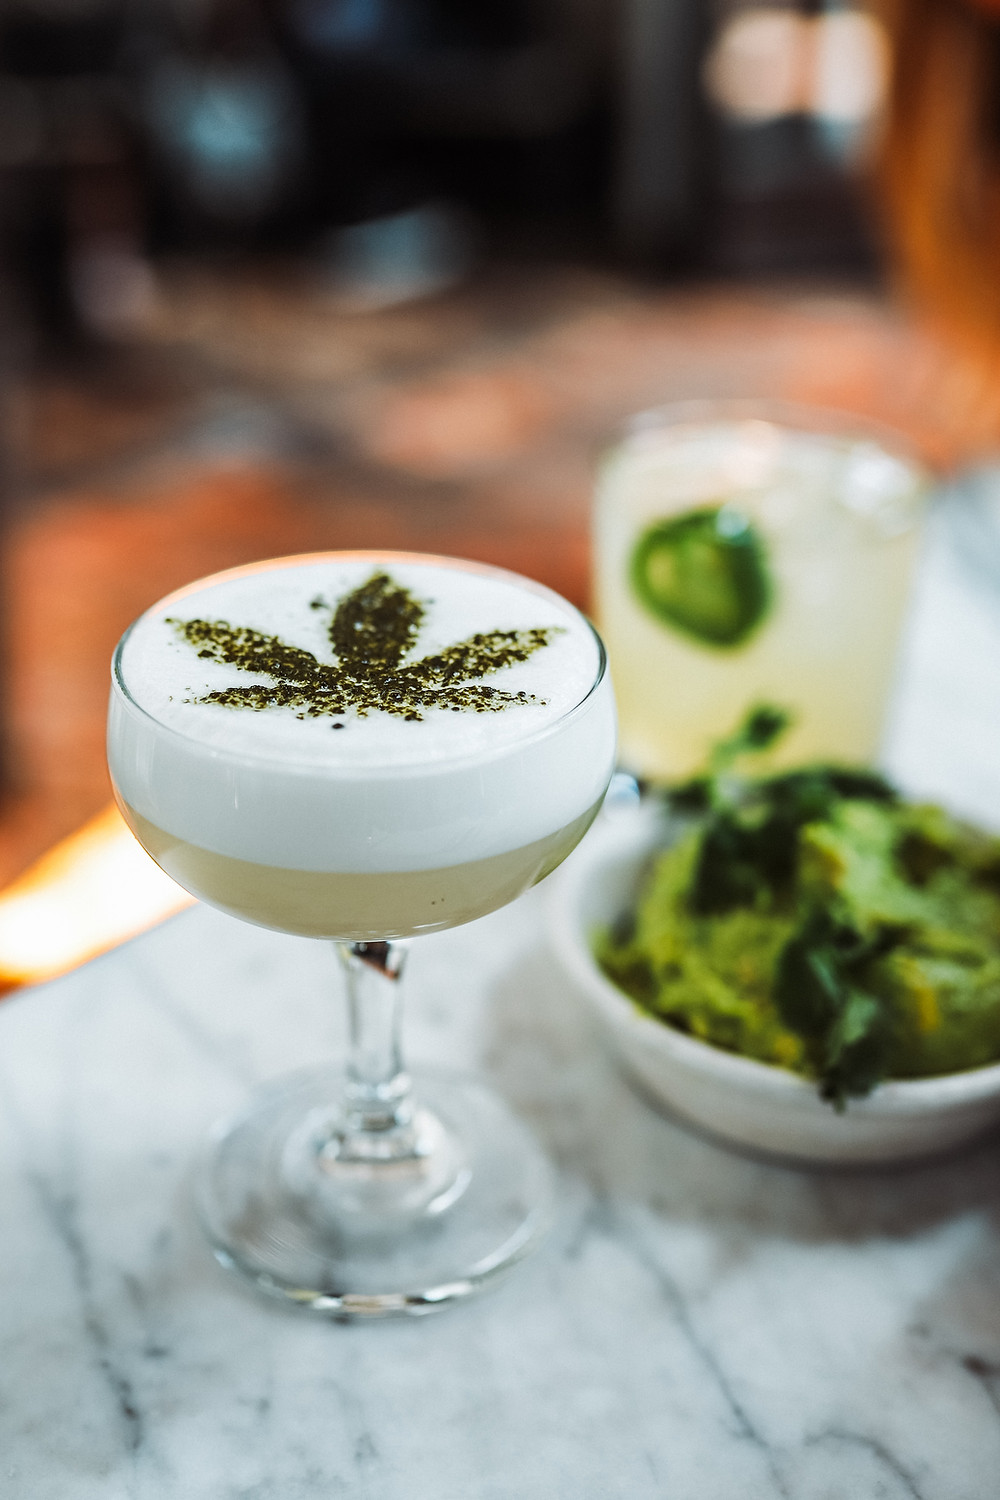 Entrepreneurial Cannabis Drink Business